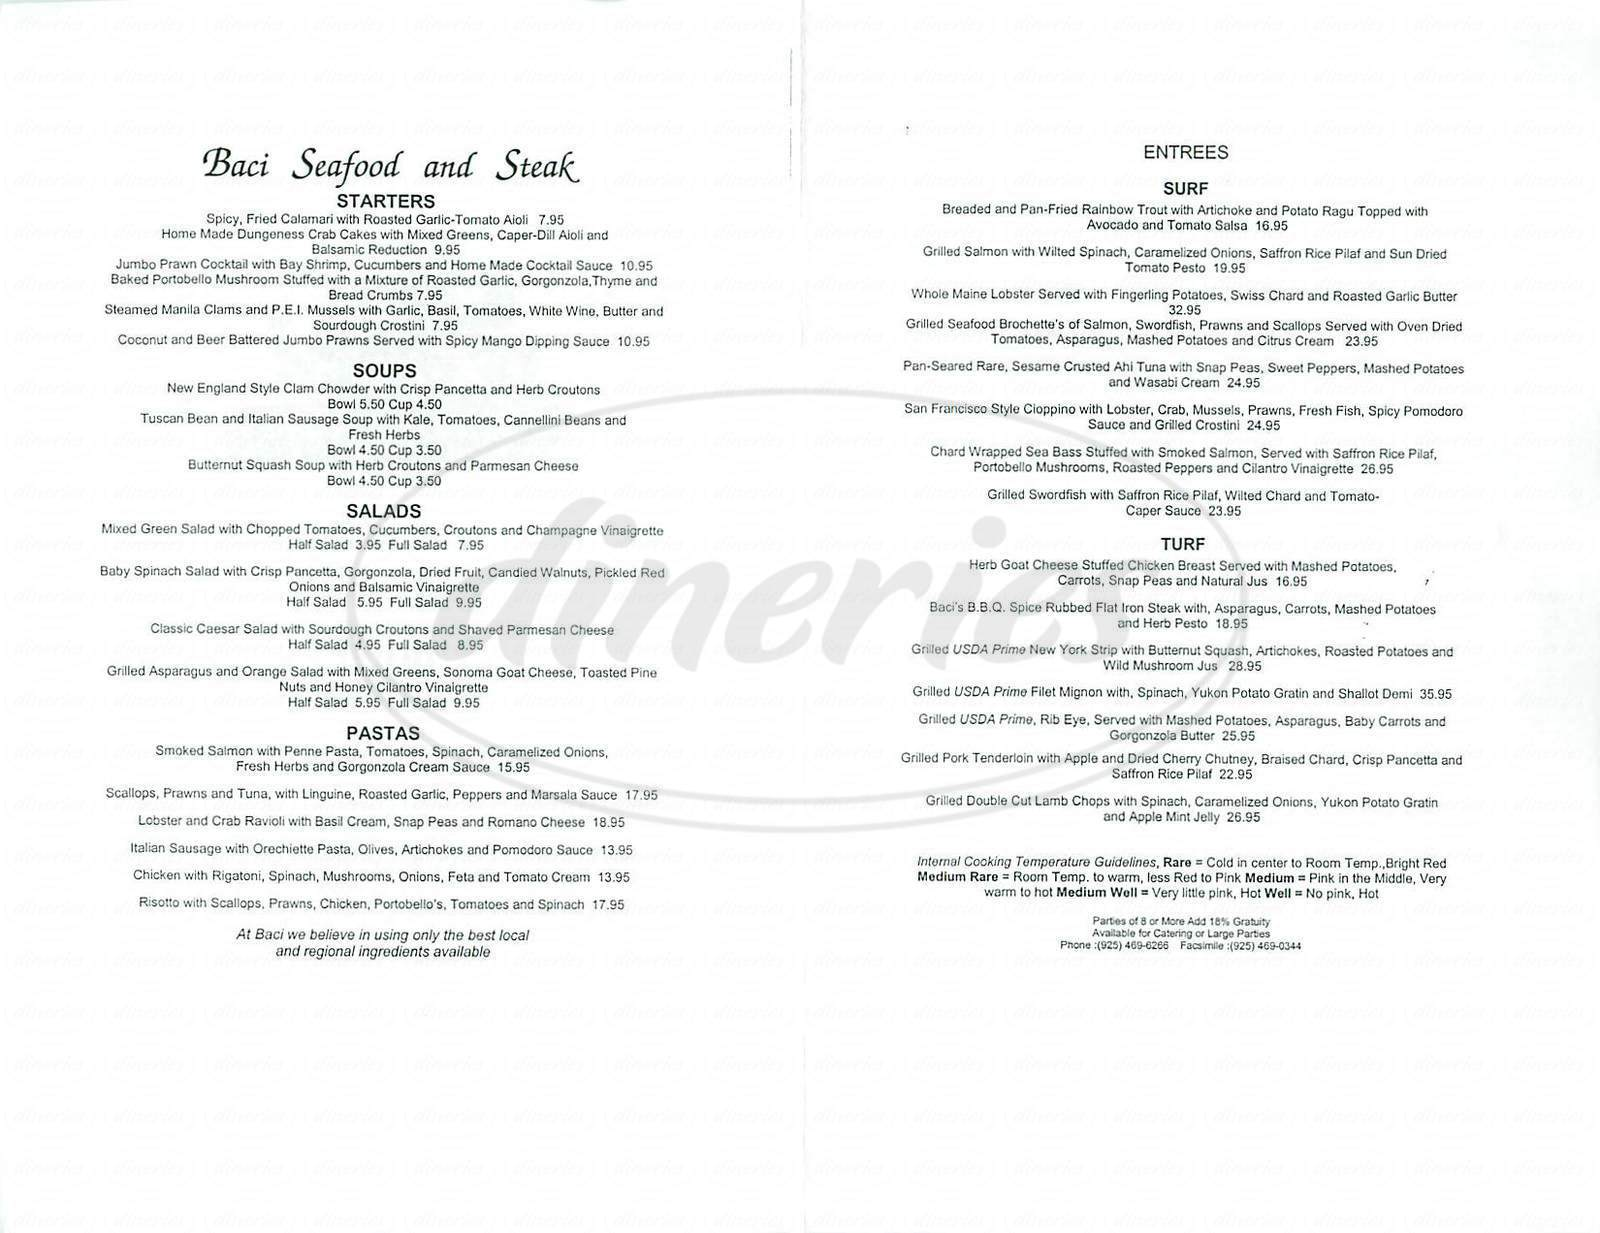 menu for Baci Seafood & Steak